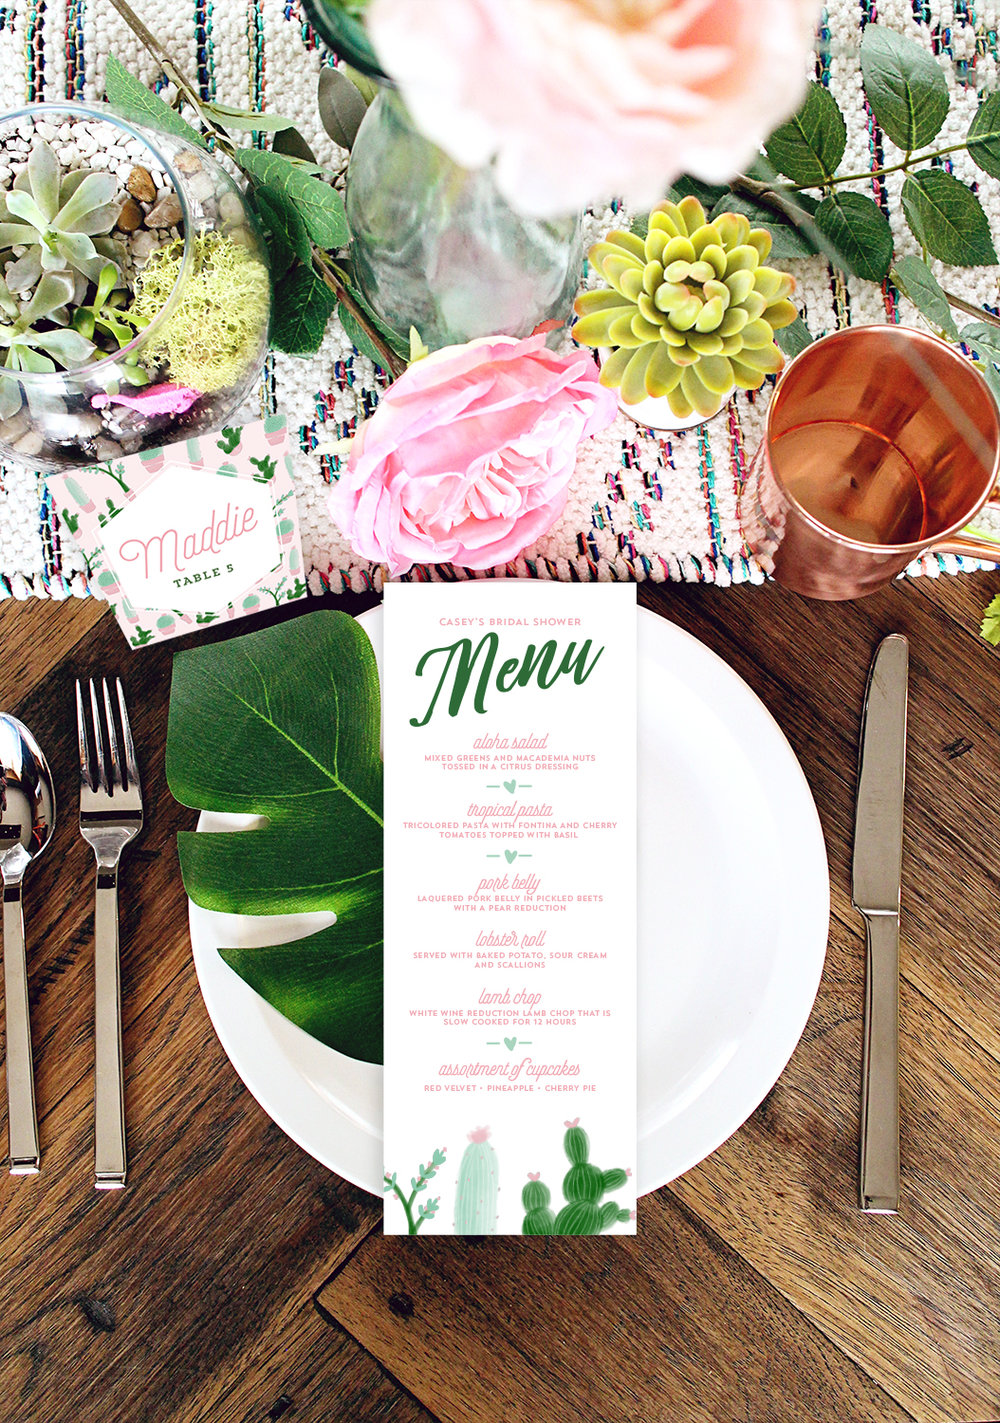 Tropical Cactus Menus for Your Wedding, Bridal Shower or Party